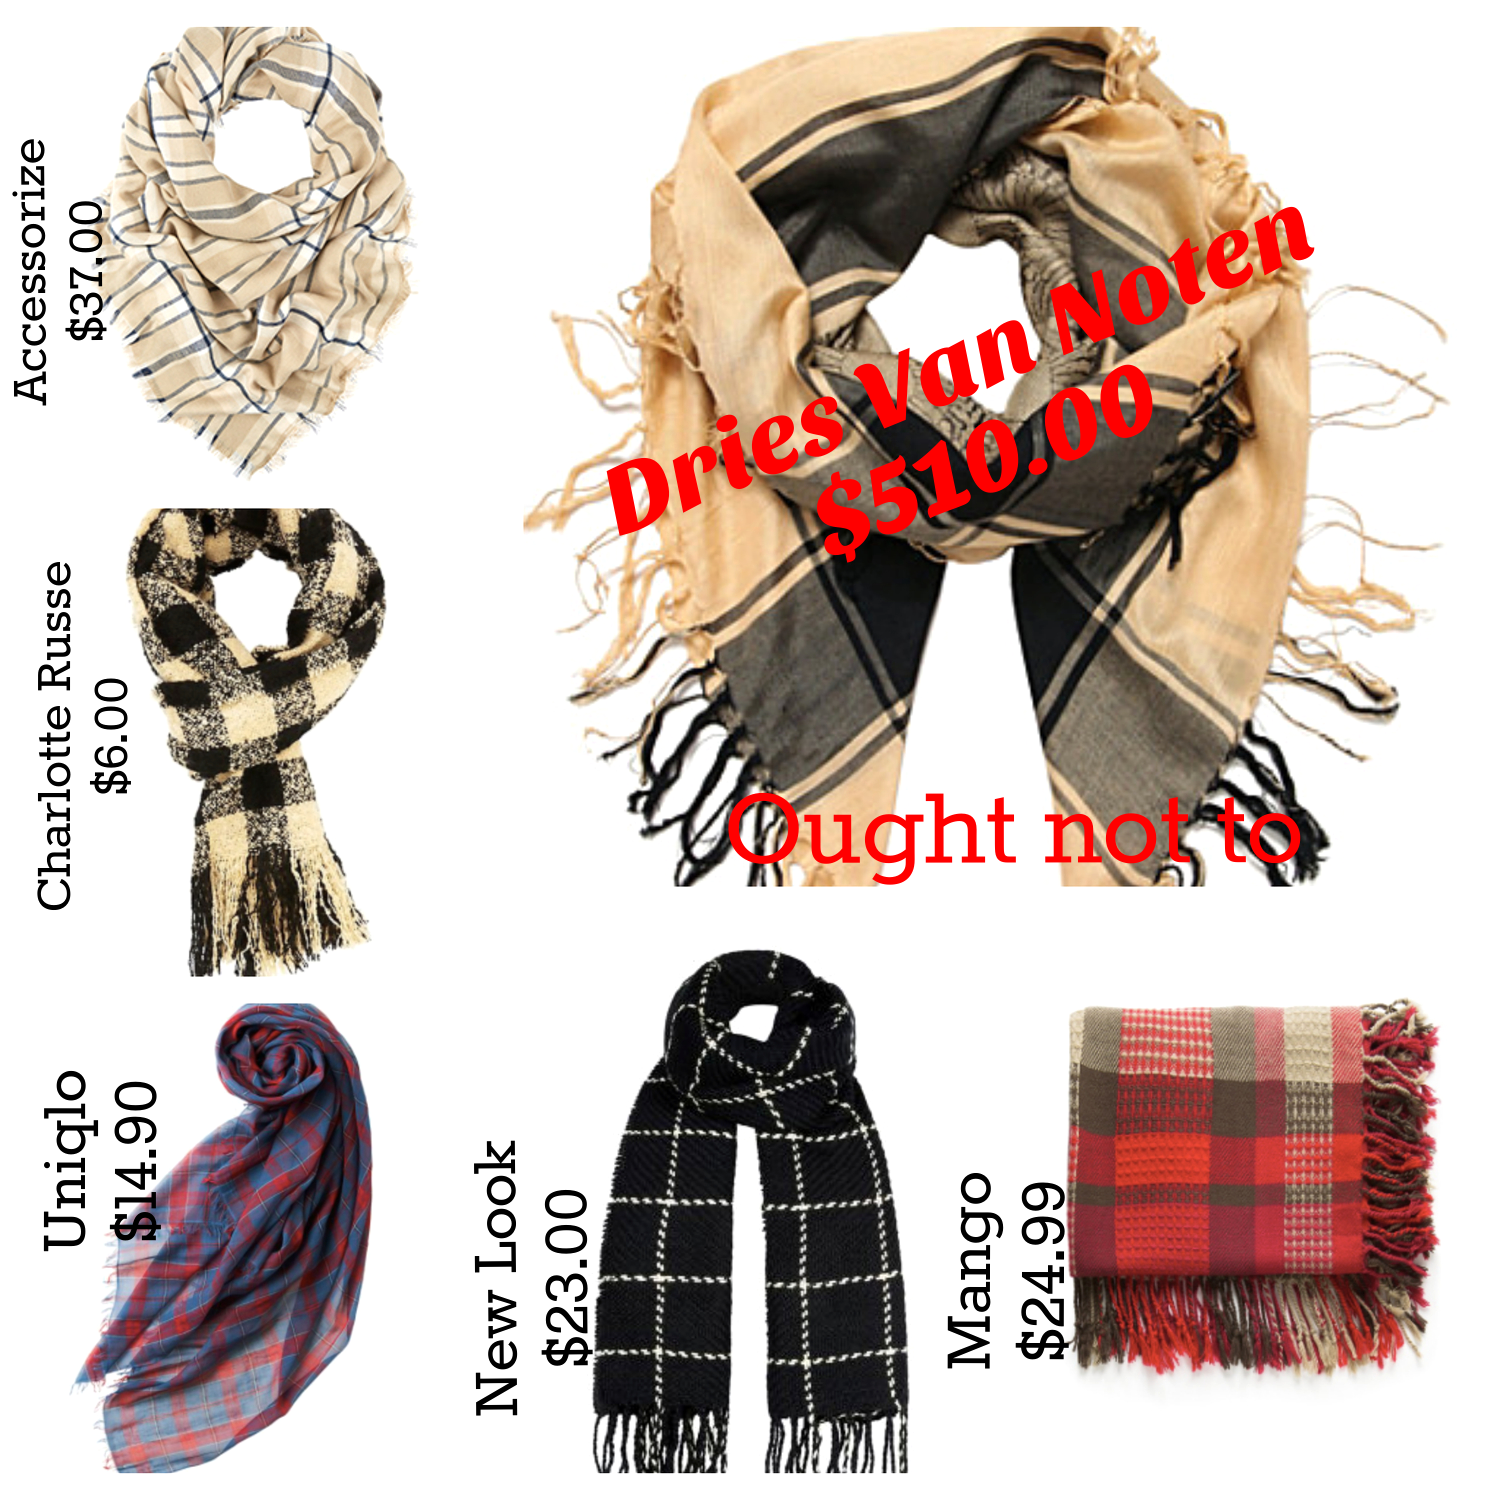 Ought not to, ought to: plaid winter scarves- expensive and affordable